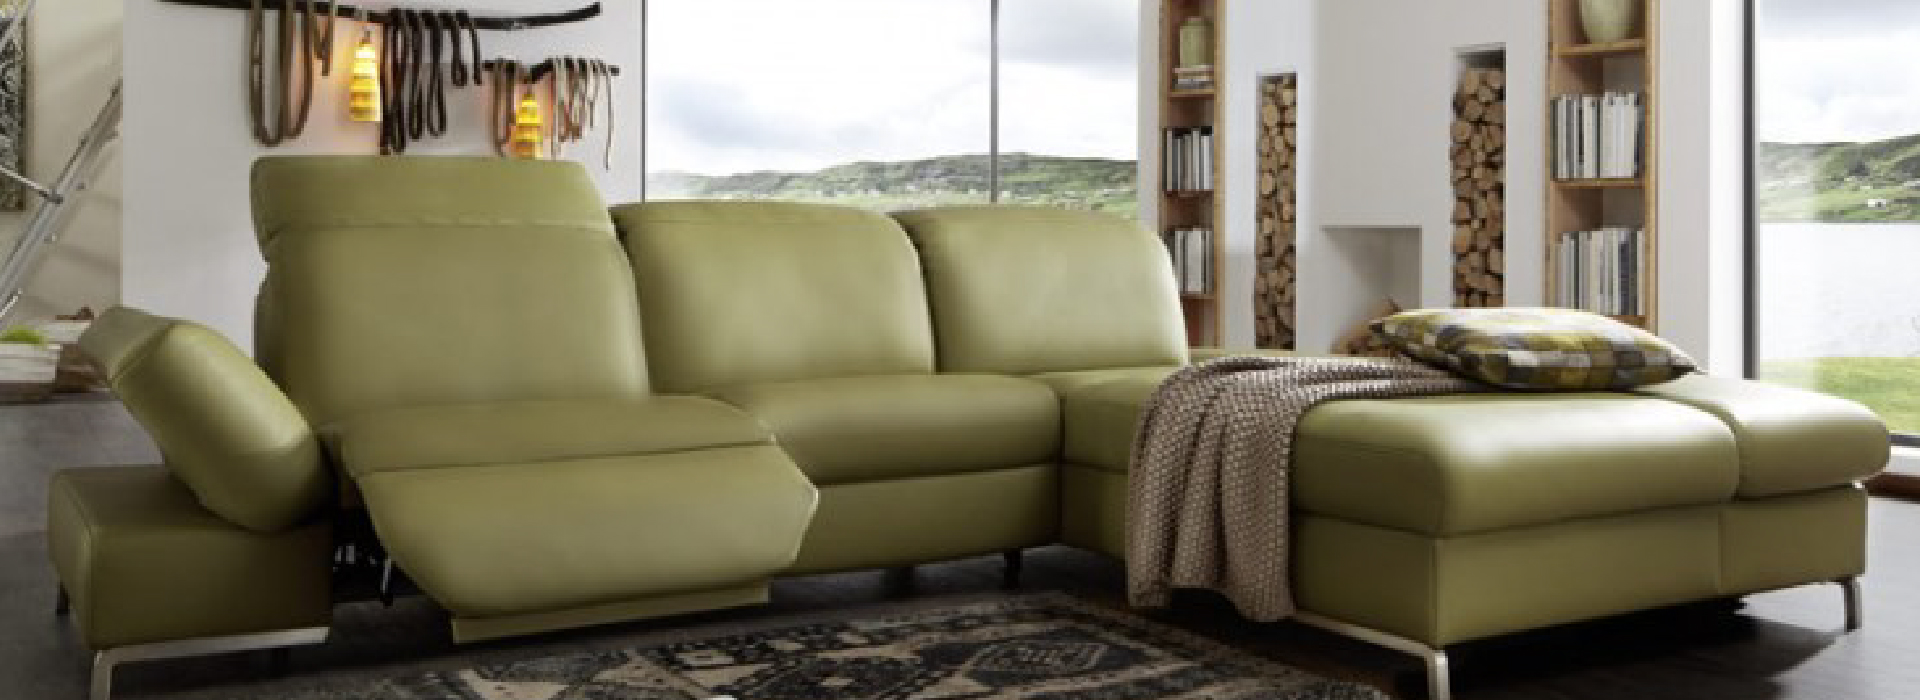 Las 3 tendencias en sof s rinconeras que no sab as - Tendencias en sofas ...